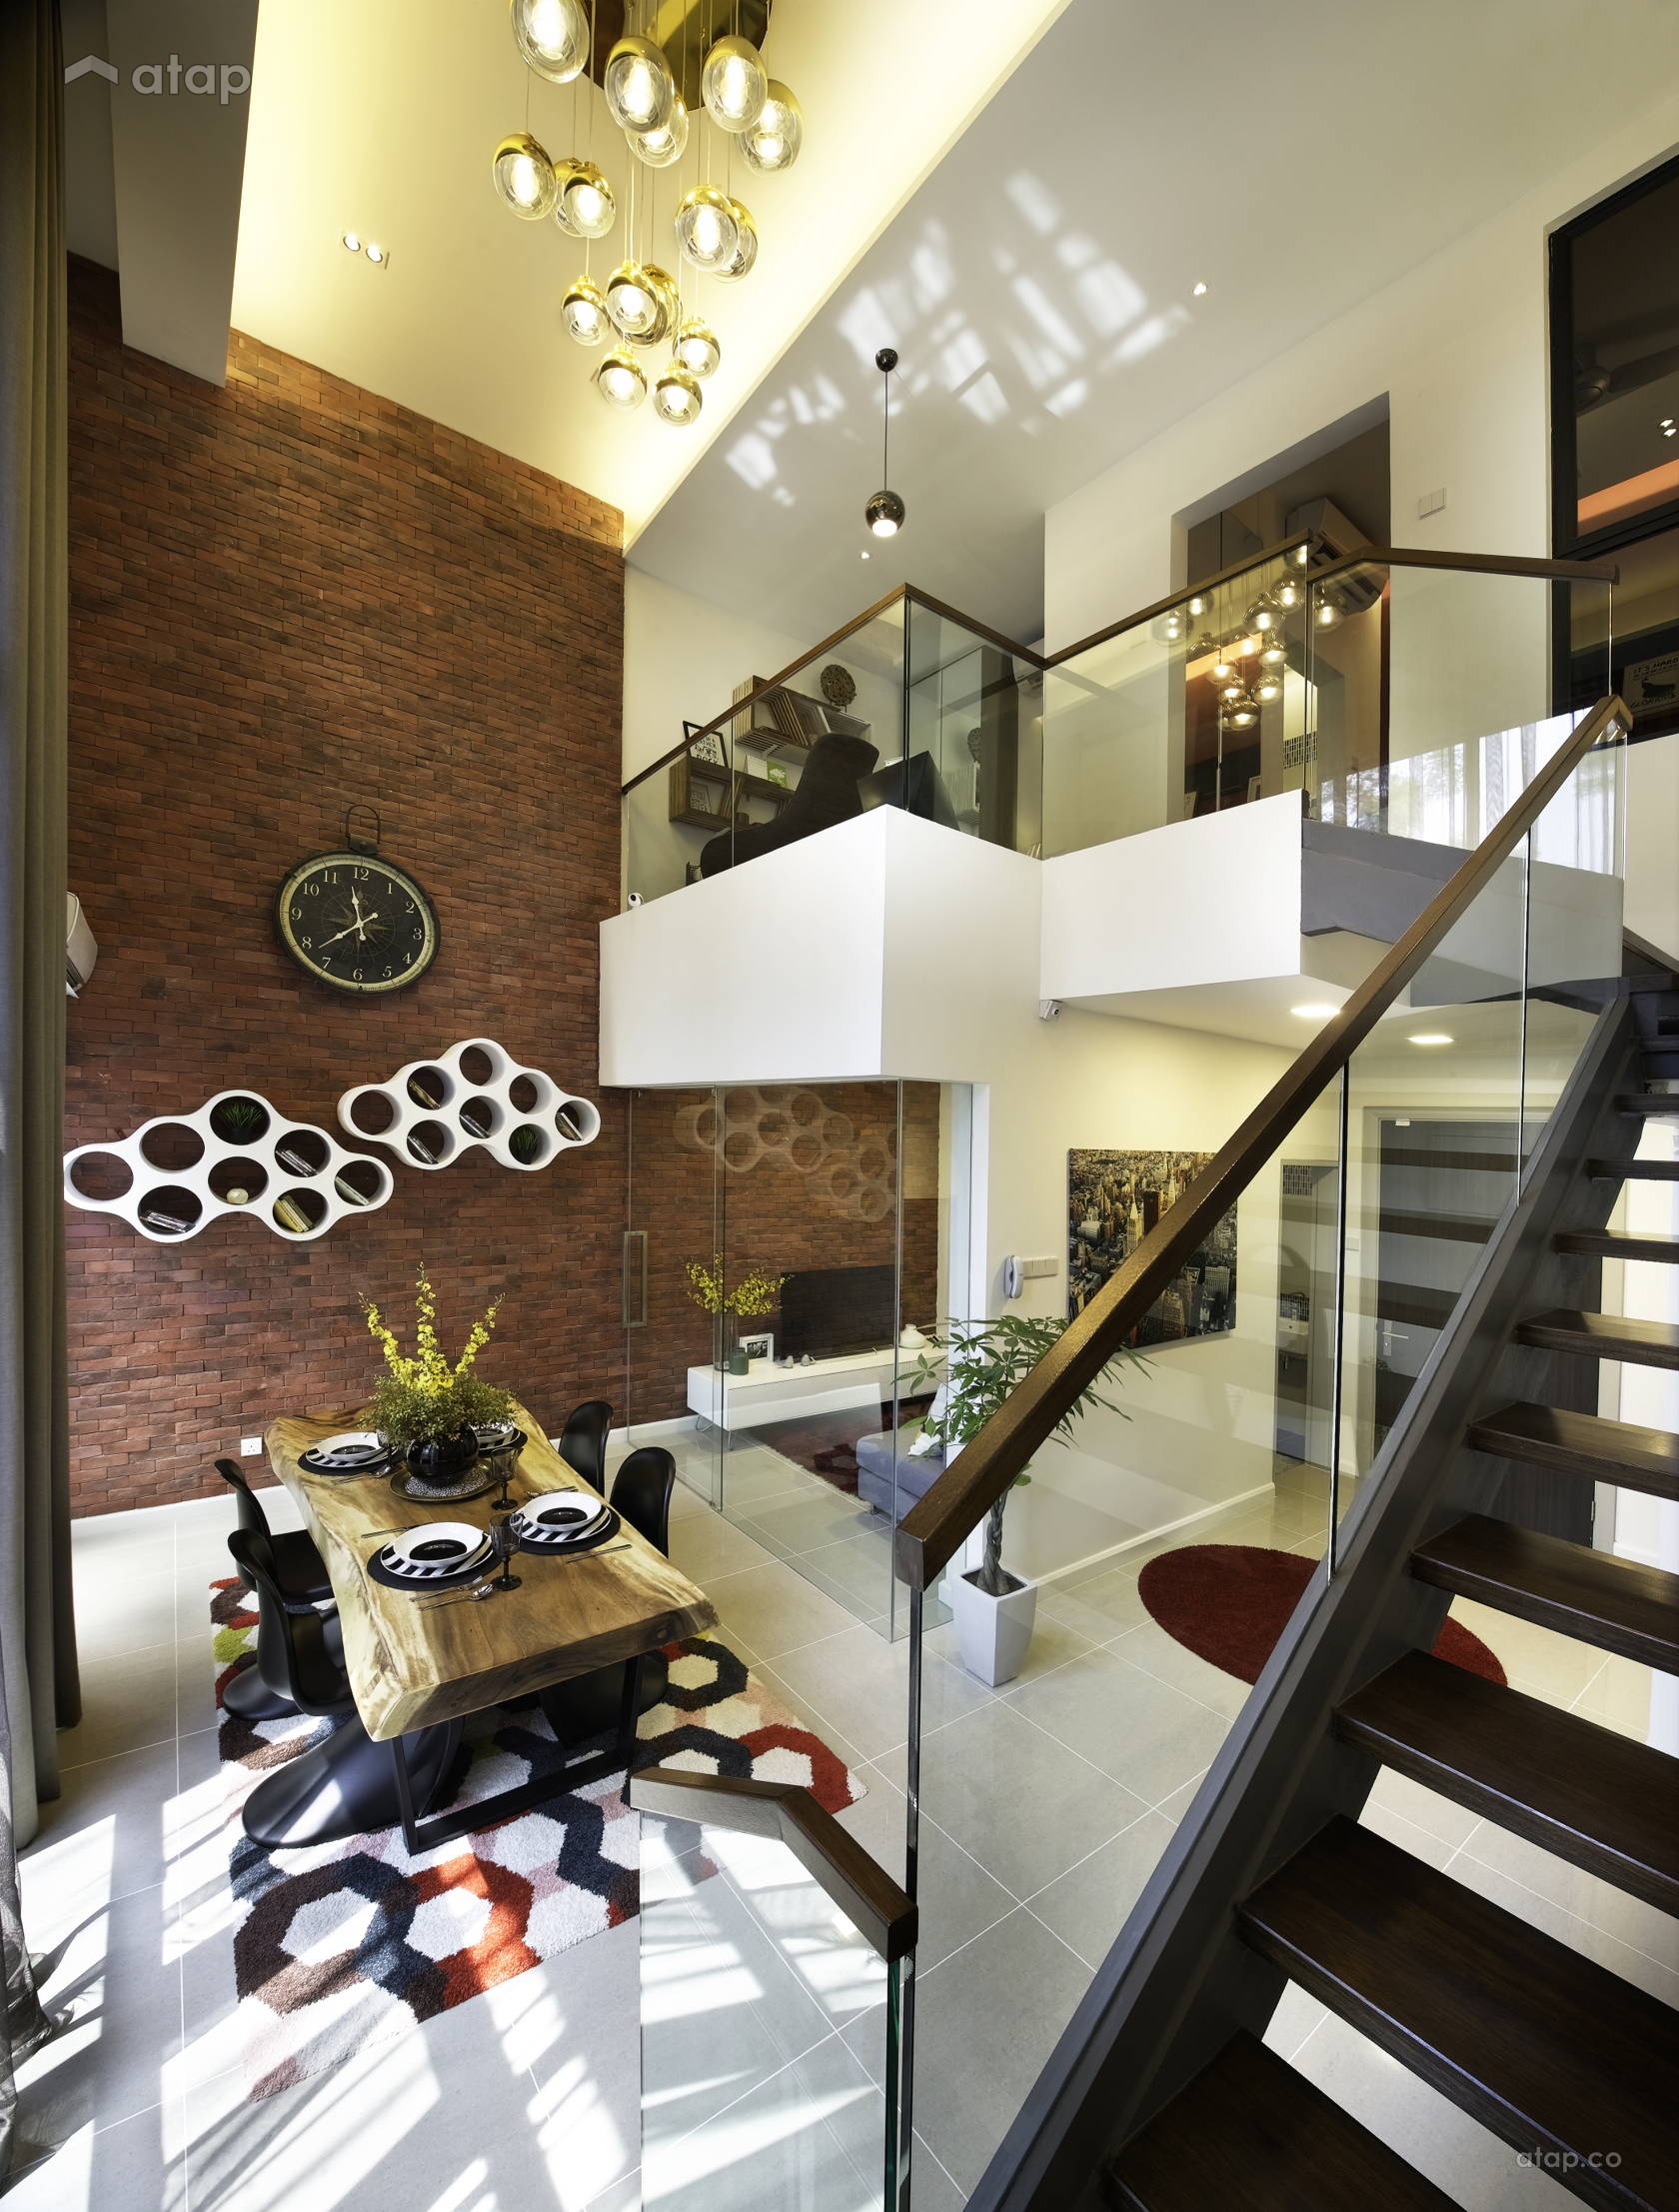 Find the best interior design and architecture professionals in ...